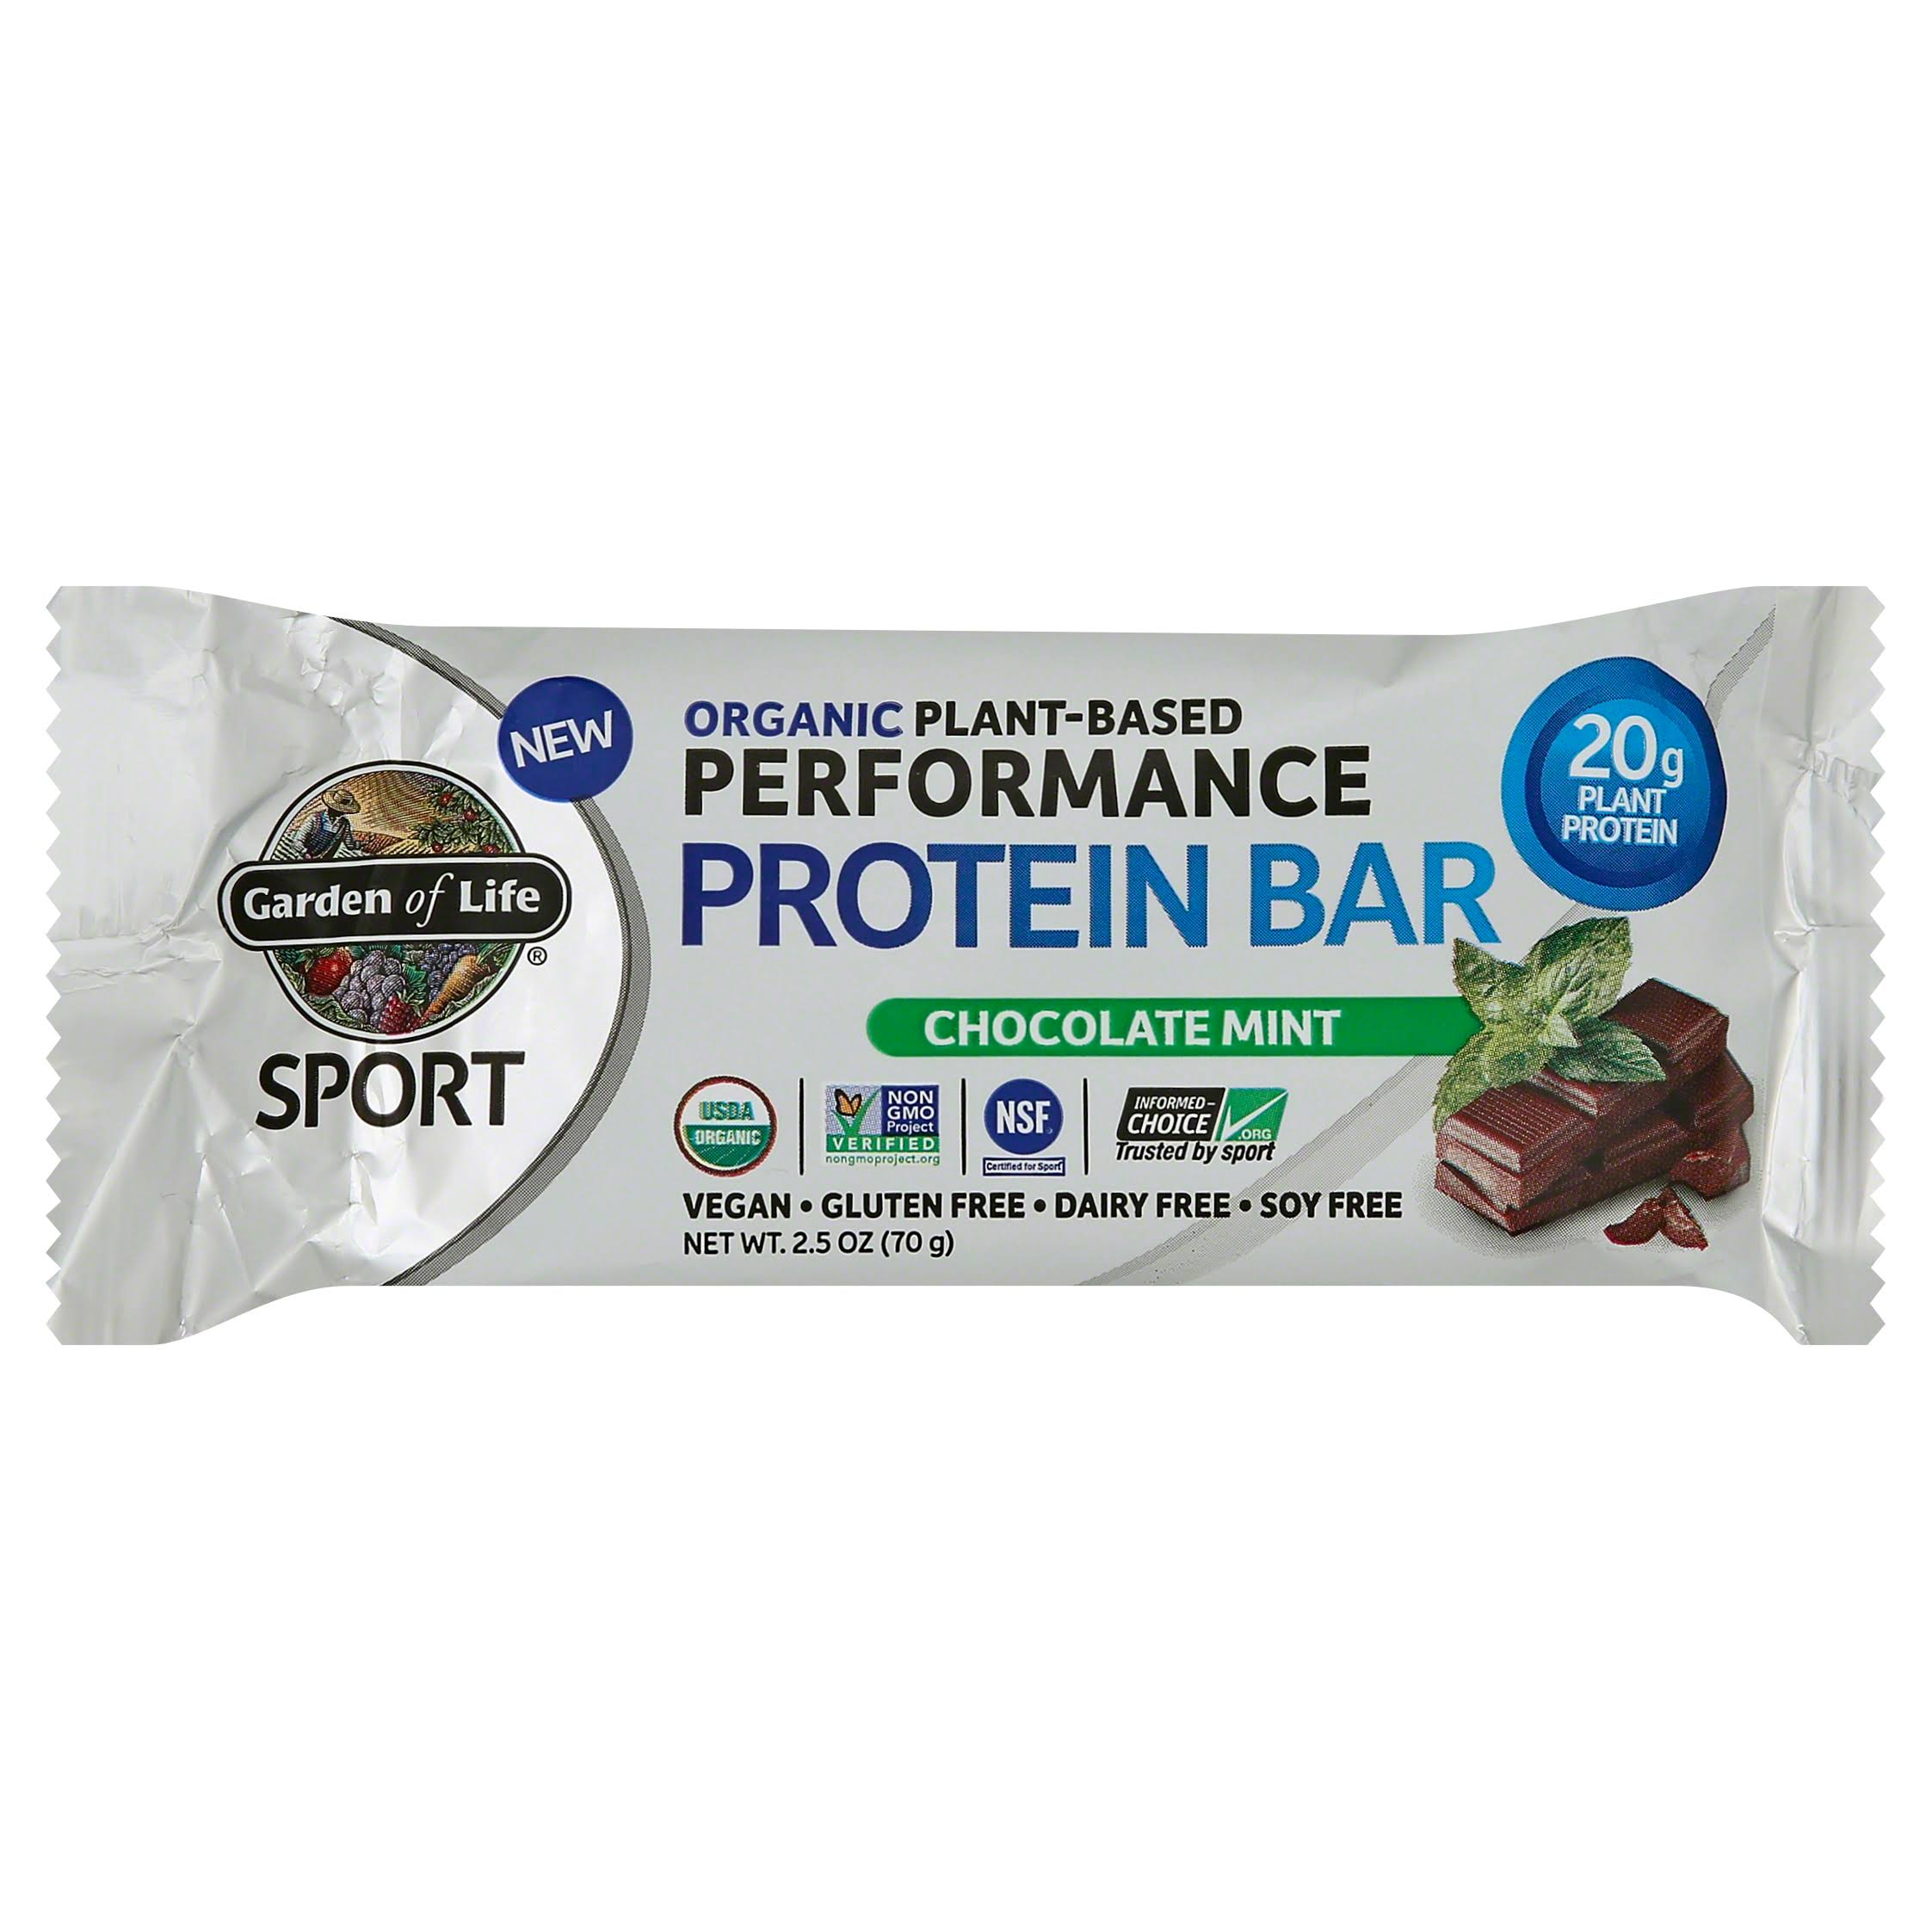 Garden of Life Sport Protein Bar, Performance, Plant-Based Organic, Chocolate Mint - 2.5 oz